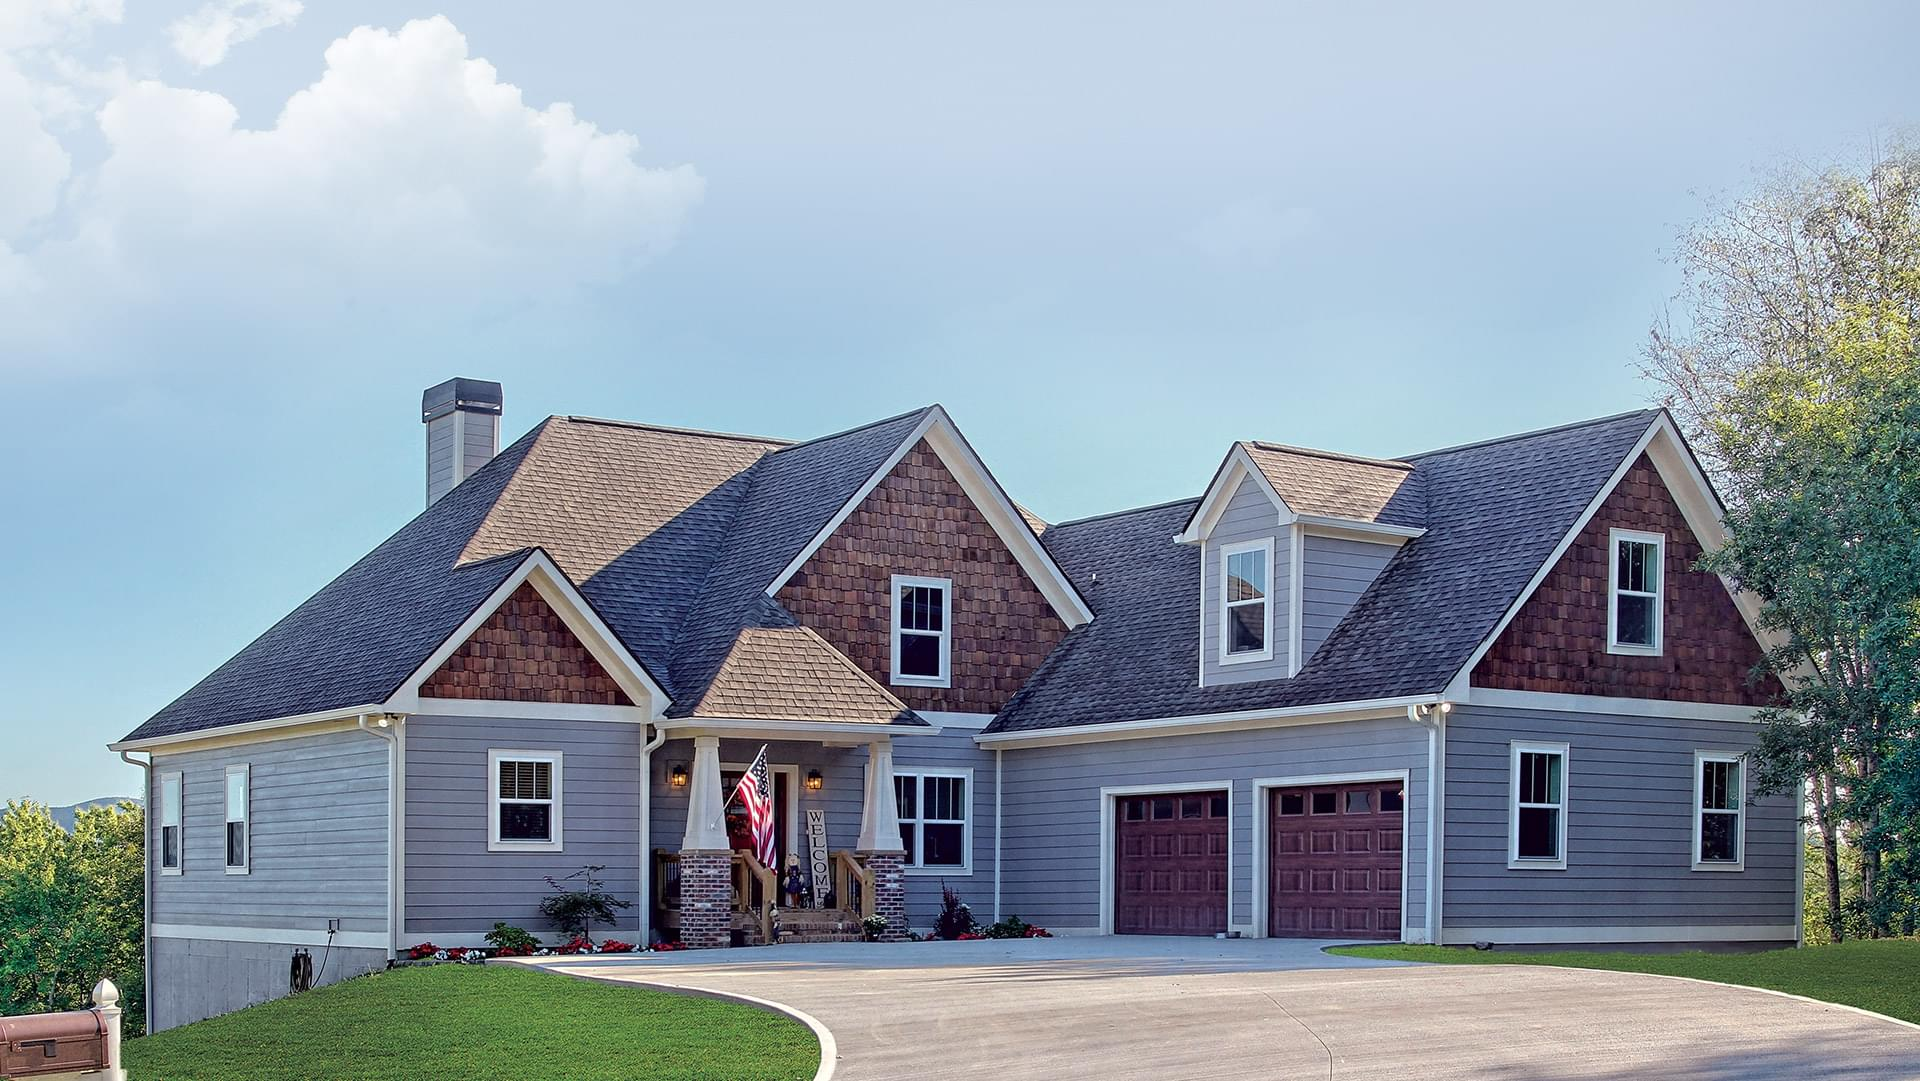 Affordable Custom Homes on your lot